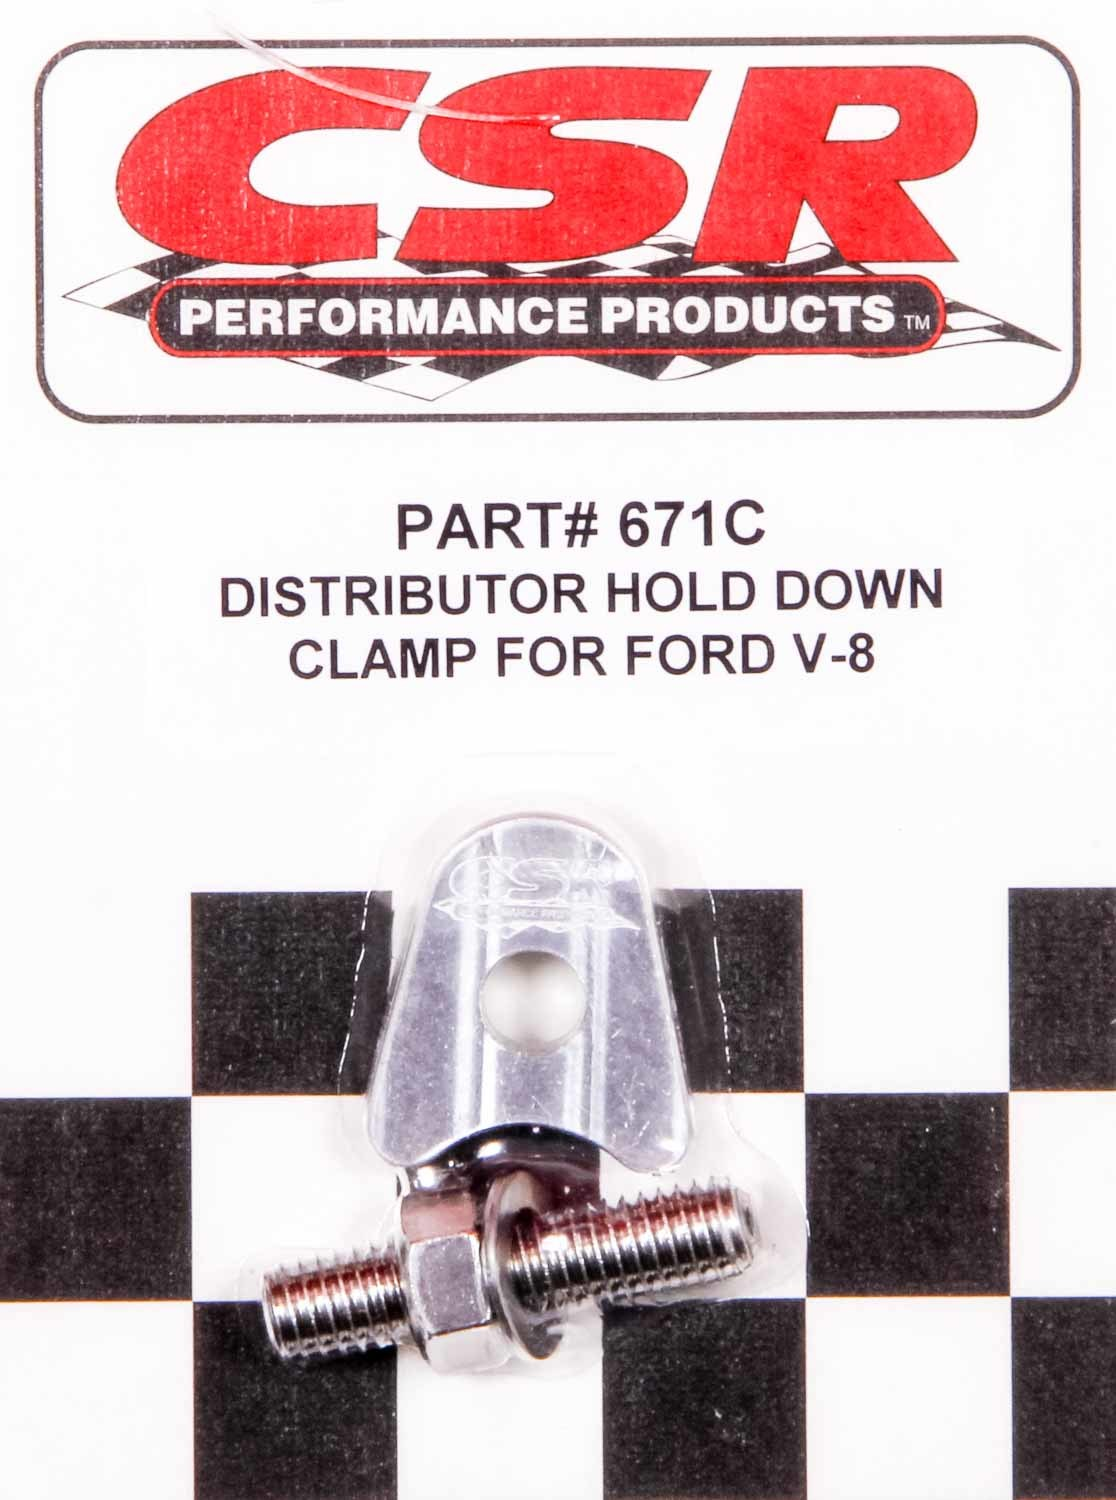 Ford V8 Distributor Hold Down Clamp - Clear